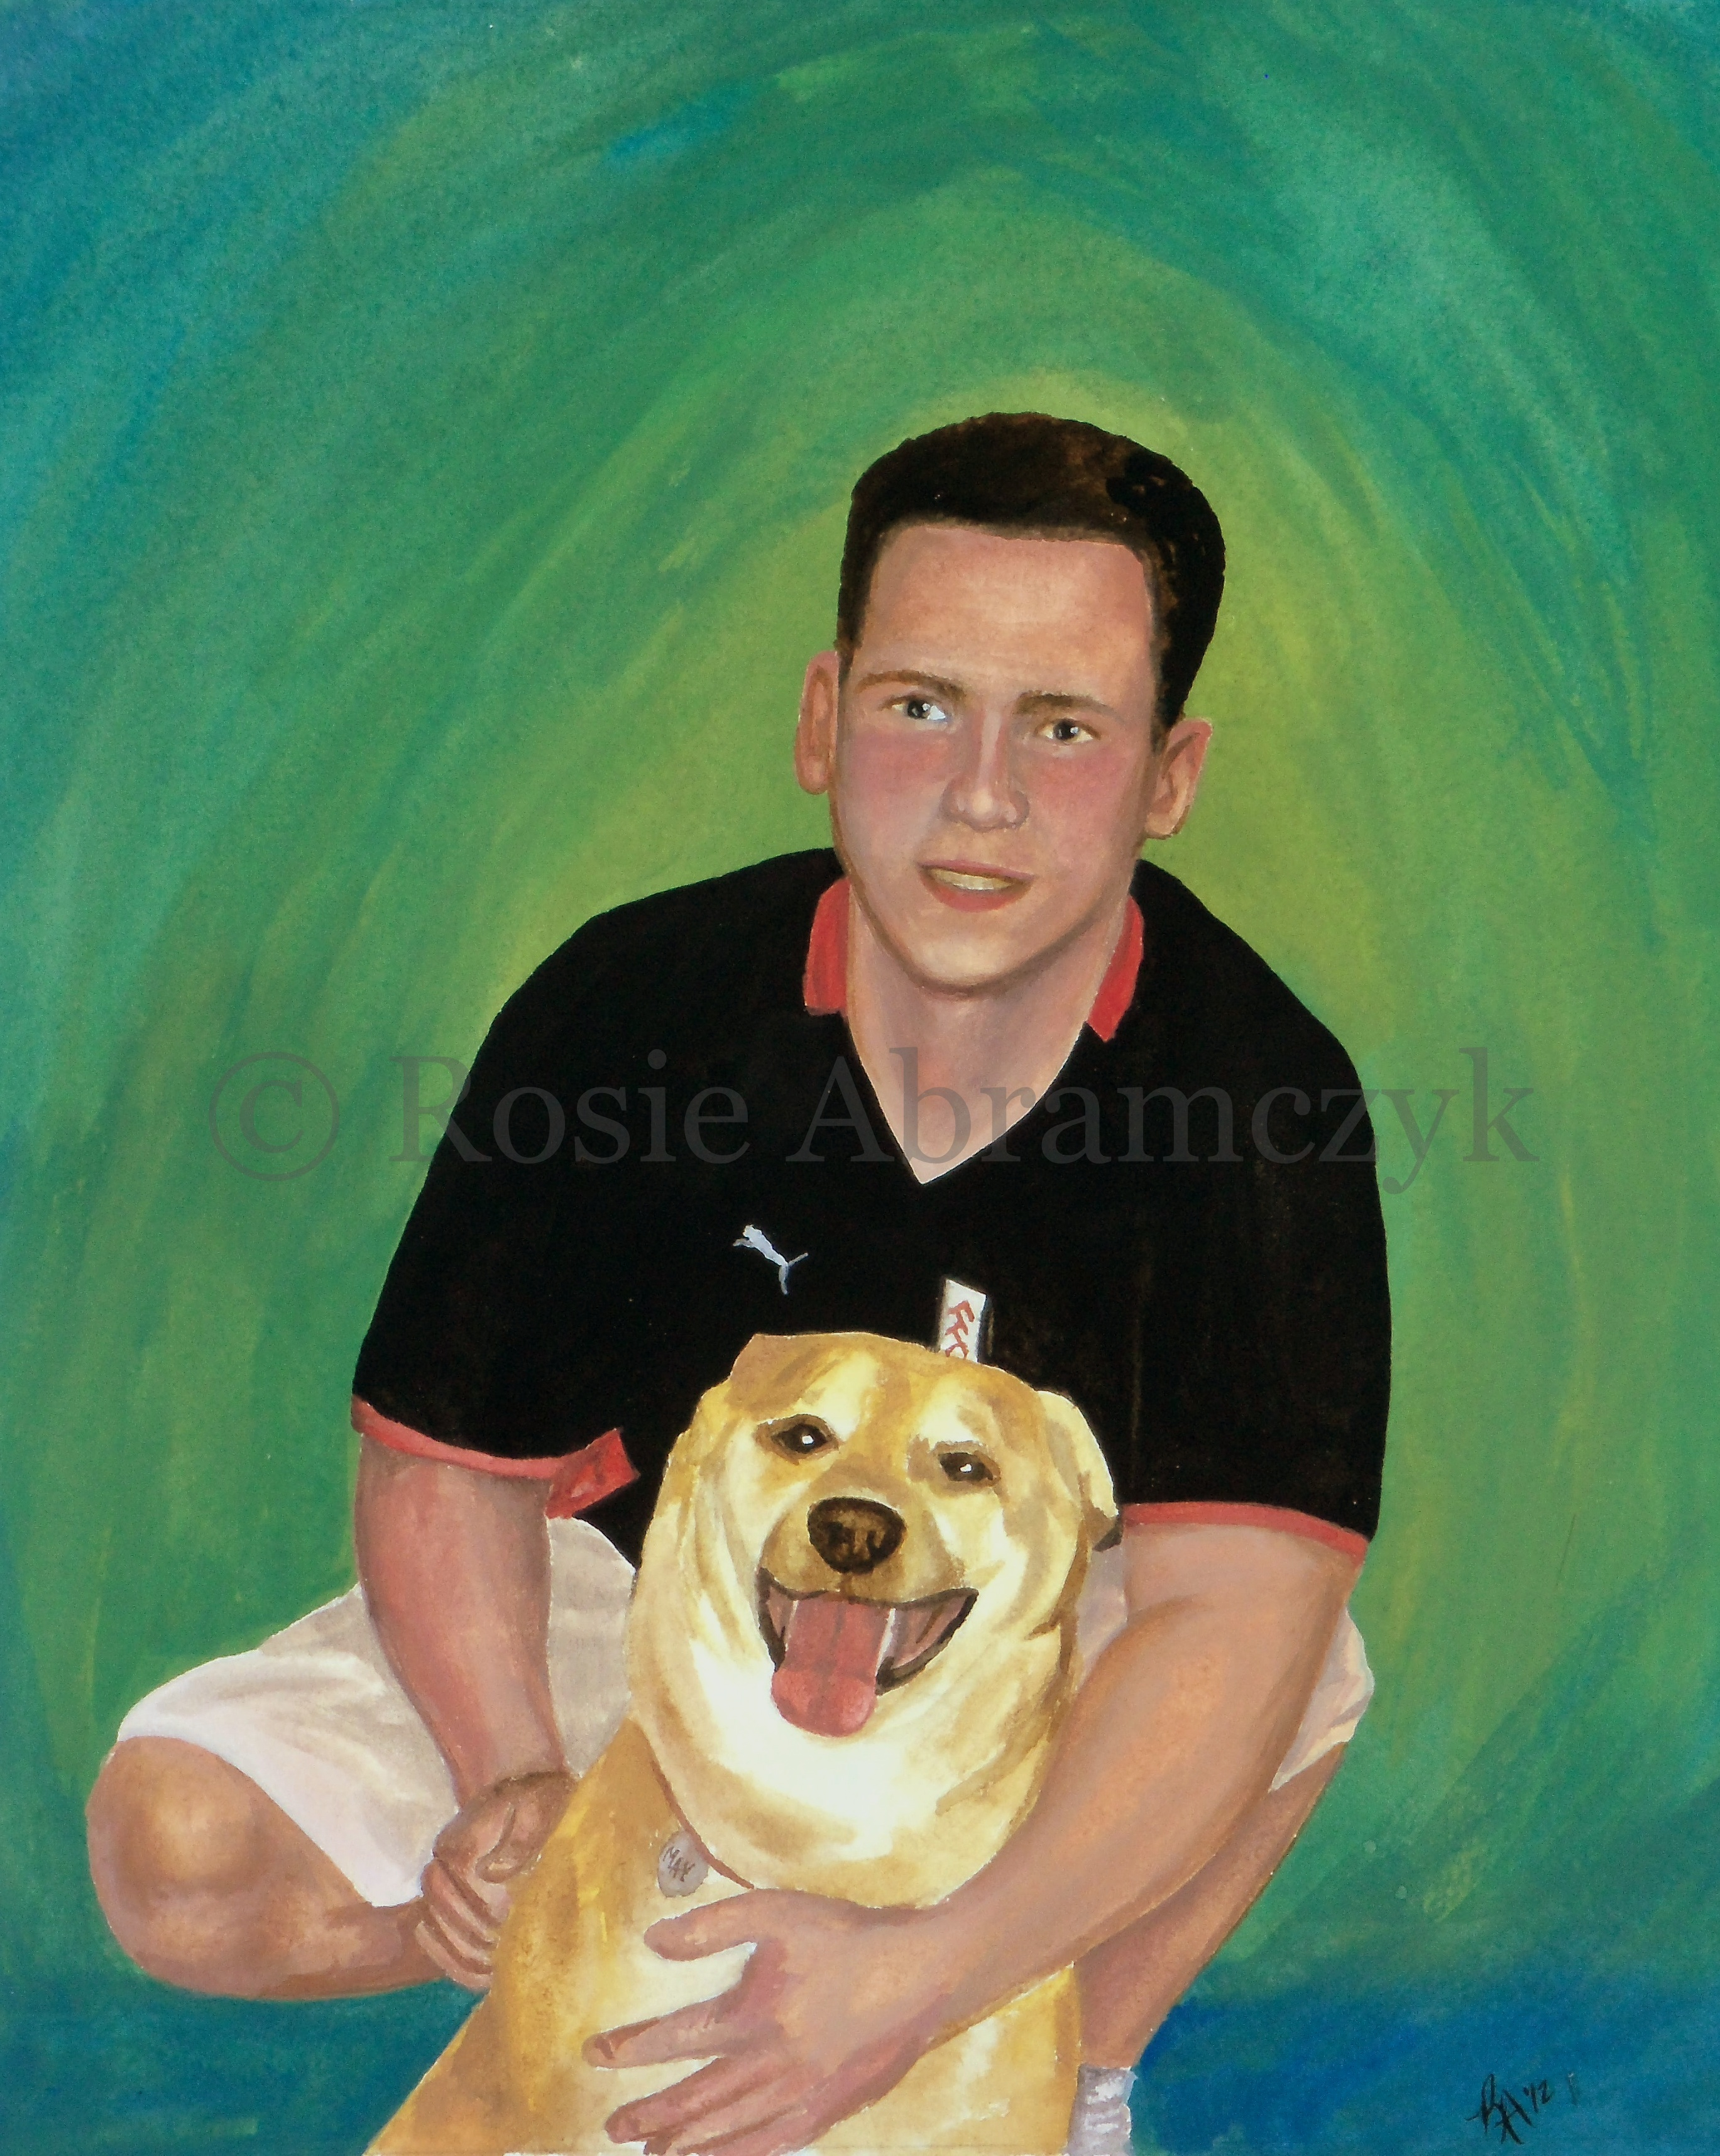 Brad and His Dog May, by Rosie Abramczyk, Gouache Paint, 2012-